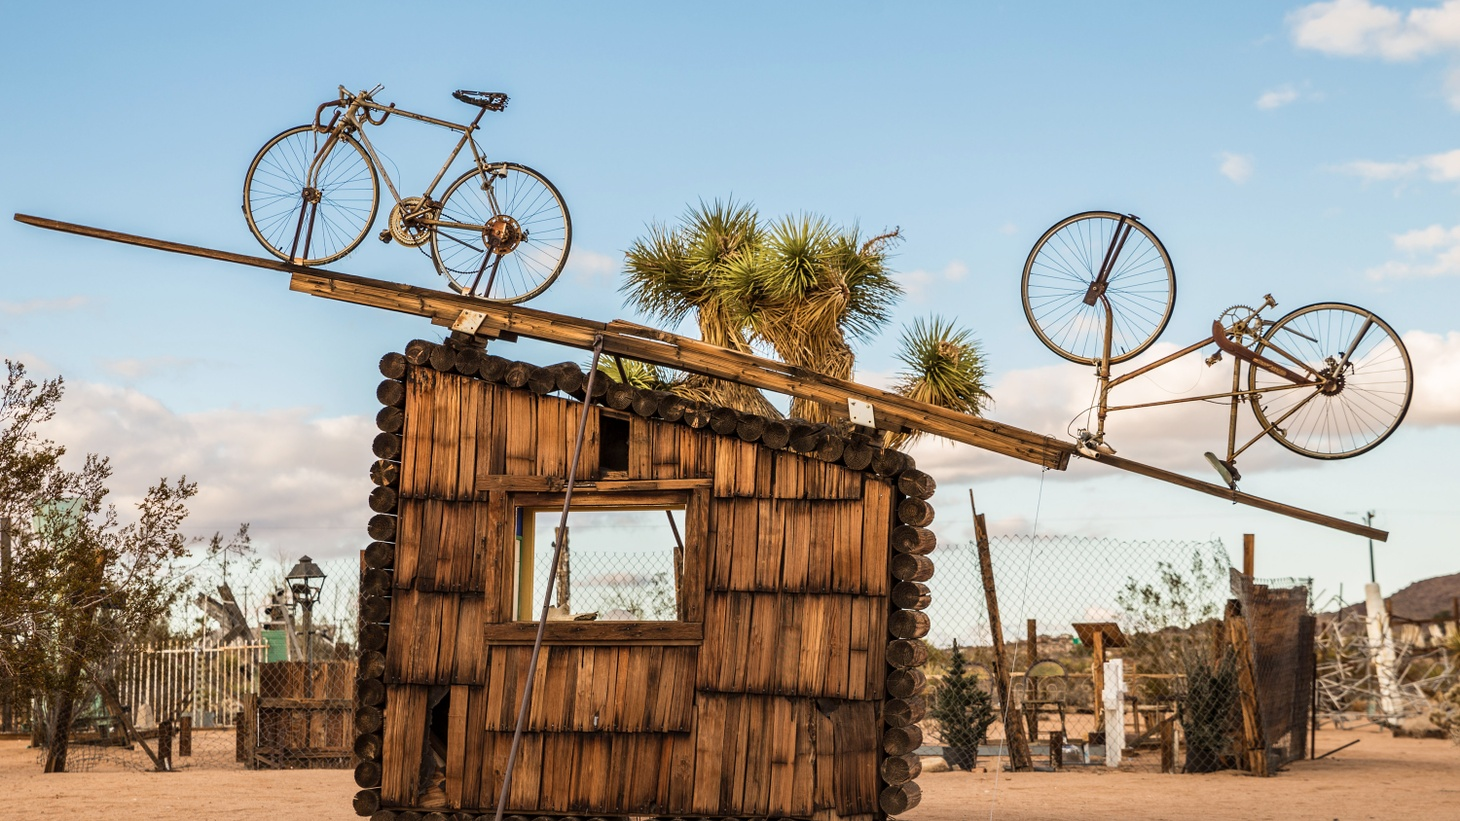 The late artist Noah Purifoy spent the last 15 years of his life in the Mojave desert, creating huge sculptures made of junk. Purifoy was also a big figure in L.A., as a founding director of the Watts Towers Art Center. Before moving to the desert, he was most known for a sculpture constructed from charred debris from the 1965 Watts Rebellion.